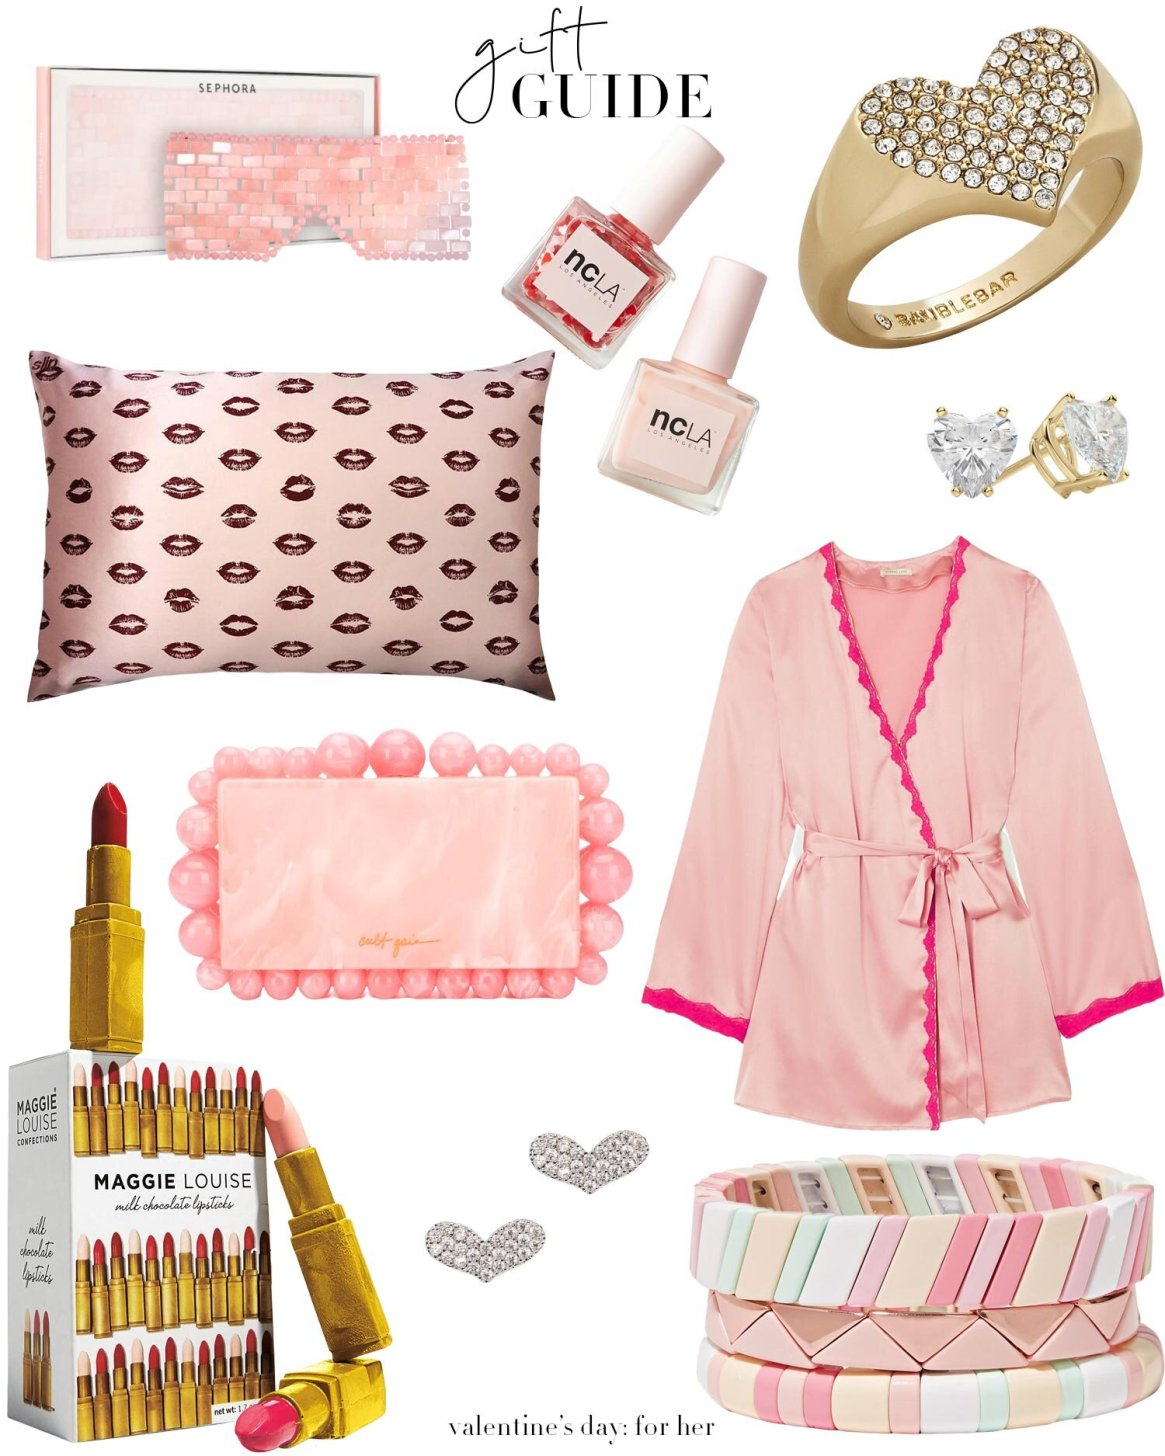 Gift-Guide-Valentine's-Day-For-Her